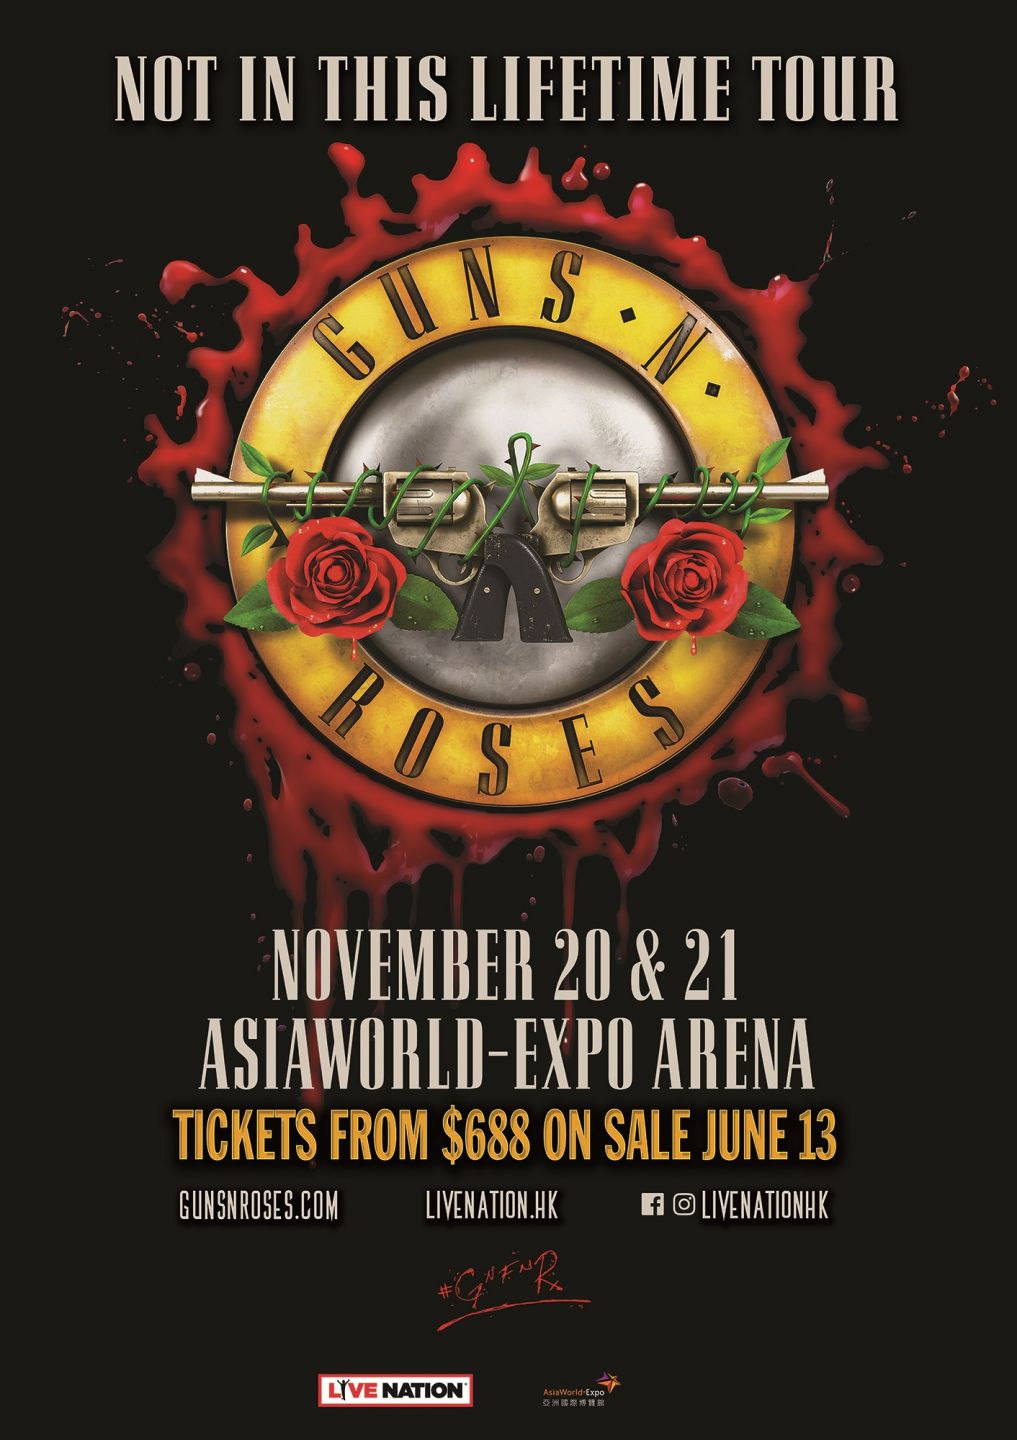 Guns N Roses Not In This Lifetime Tour 2018 Hong Kong Timable